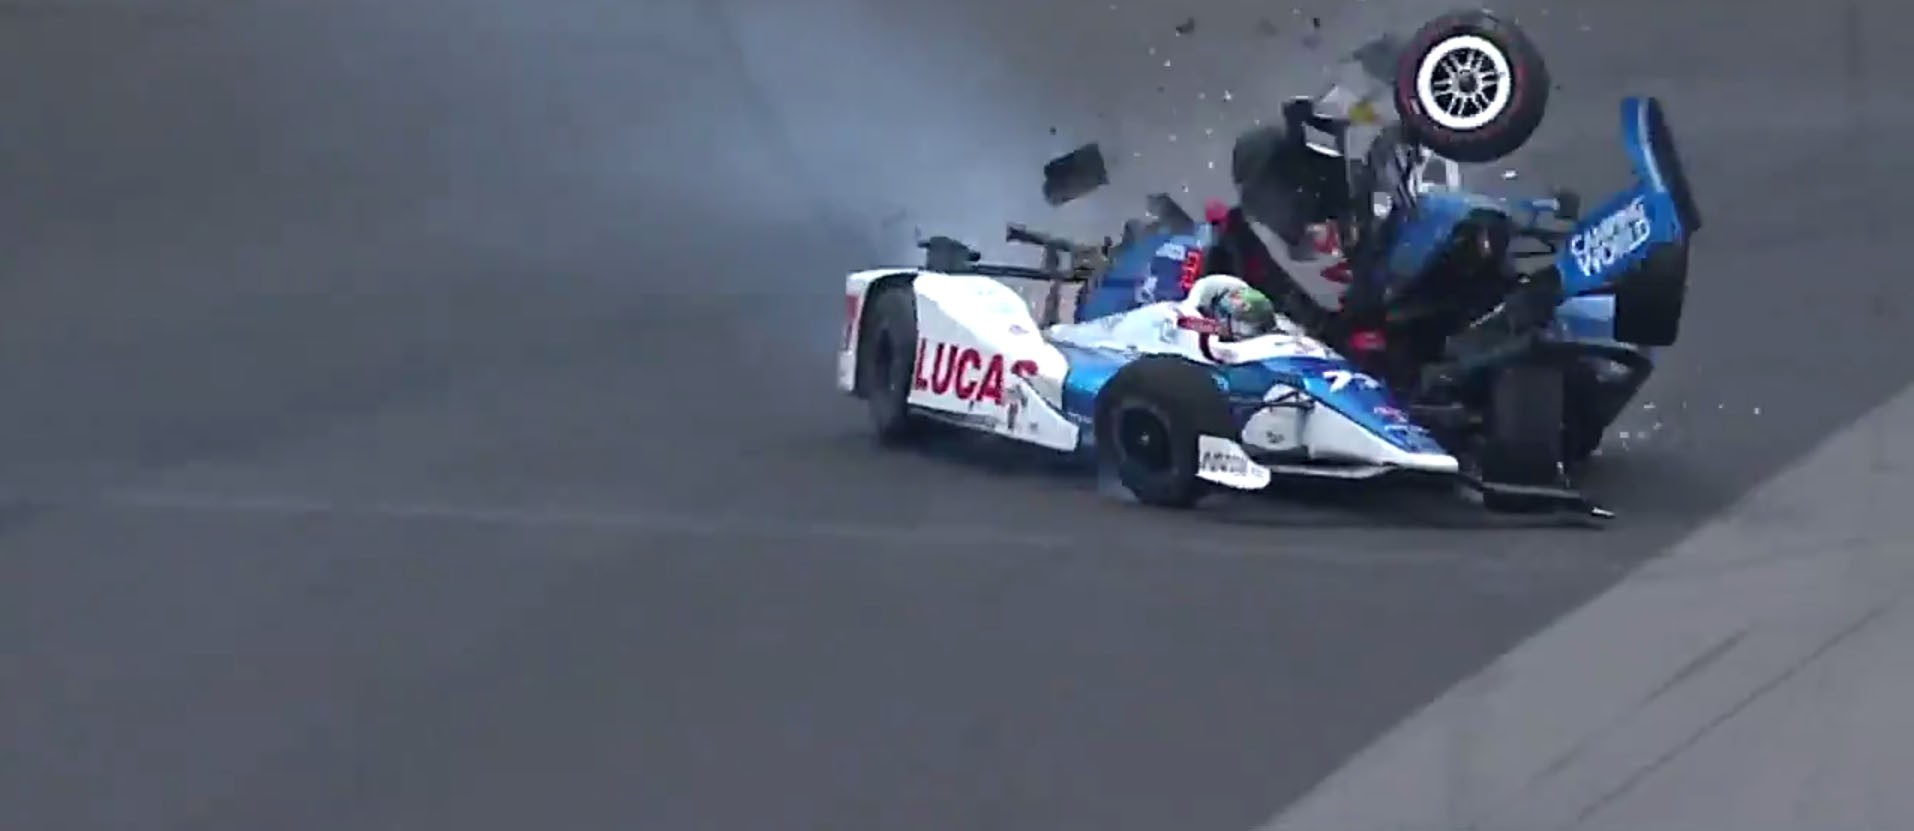 Scott Dixon's Horrible Indianapolis 500 Crash Is a Testament to Racing Safety - autoevolution